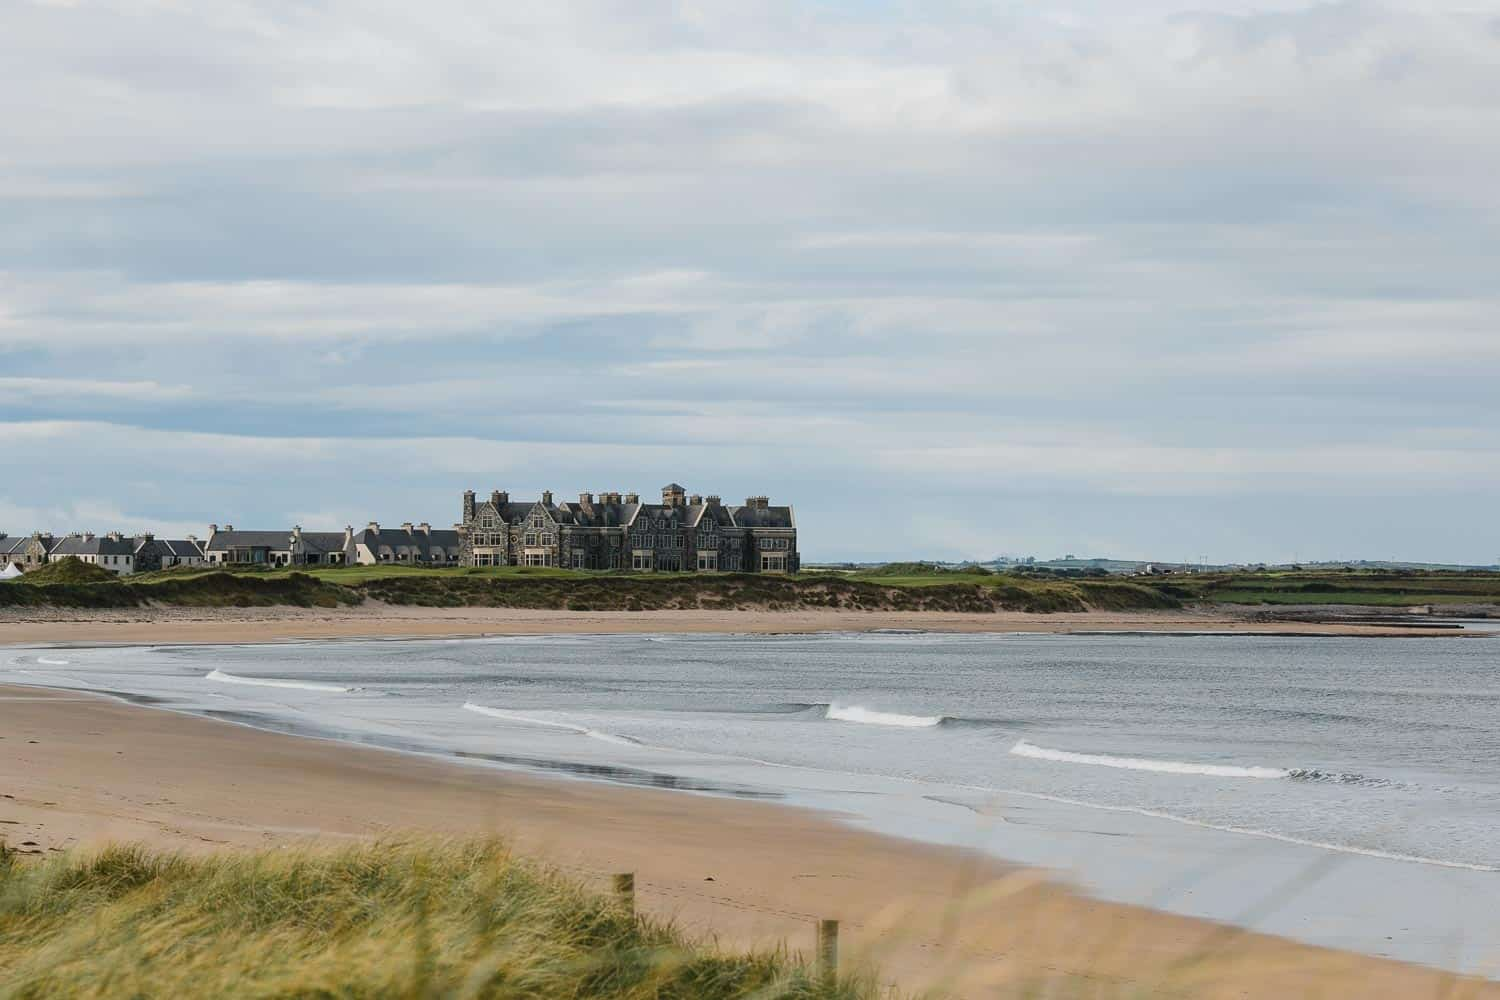 Trump International and Golf Links Doonbeg View